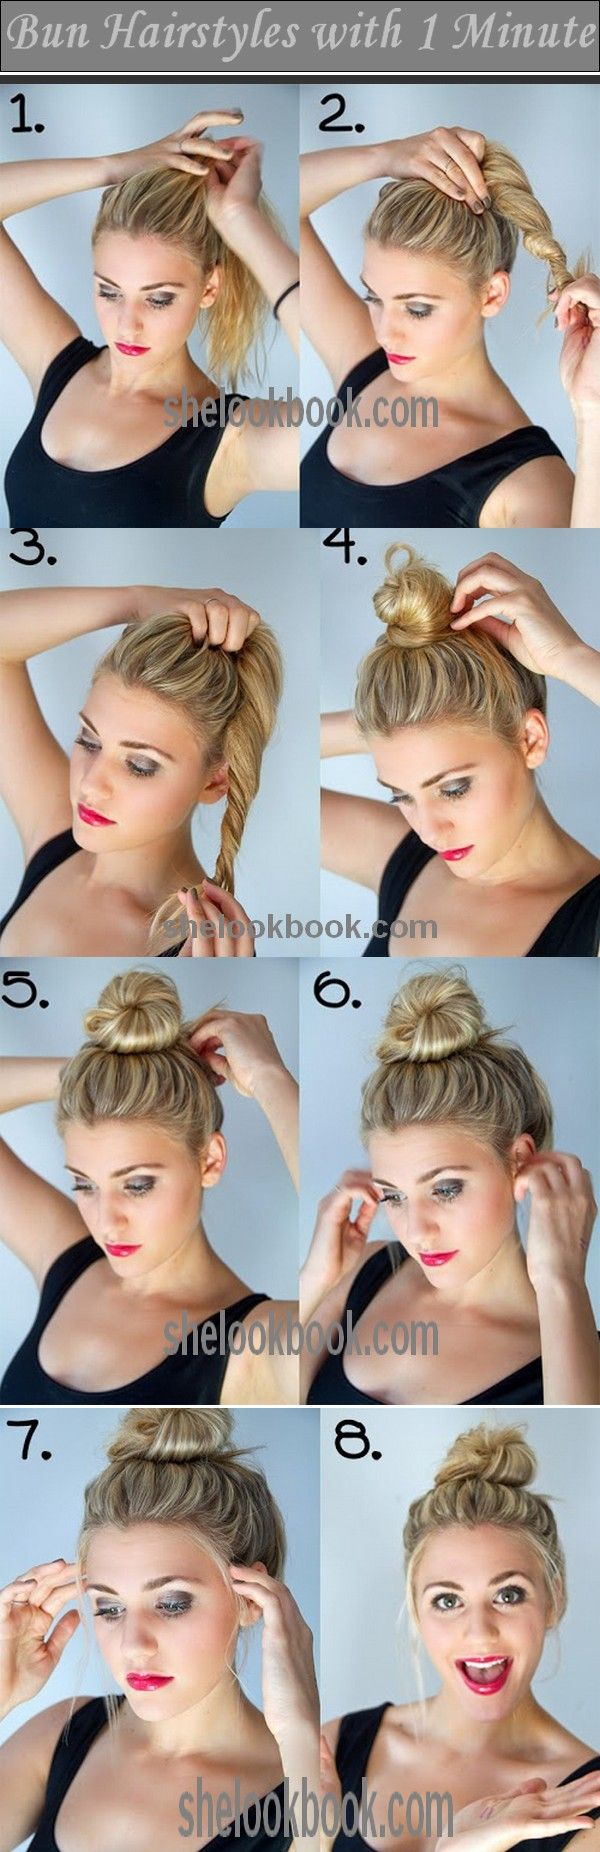 Twisted Bun Hairstyle. Takes literally one minute and I wear it every day. I love it because even in a pony tale my hair still sits on my neck, but this makes it 10x cooler.